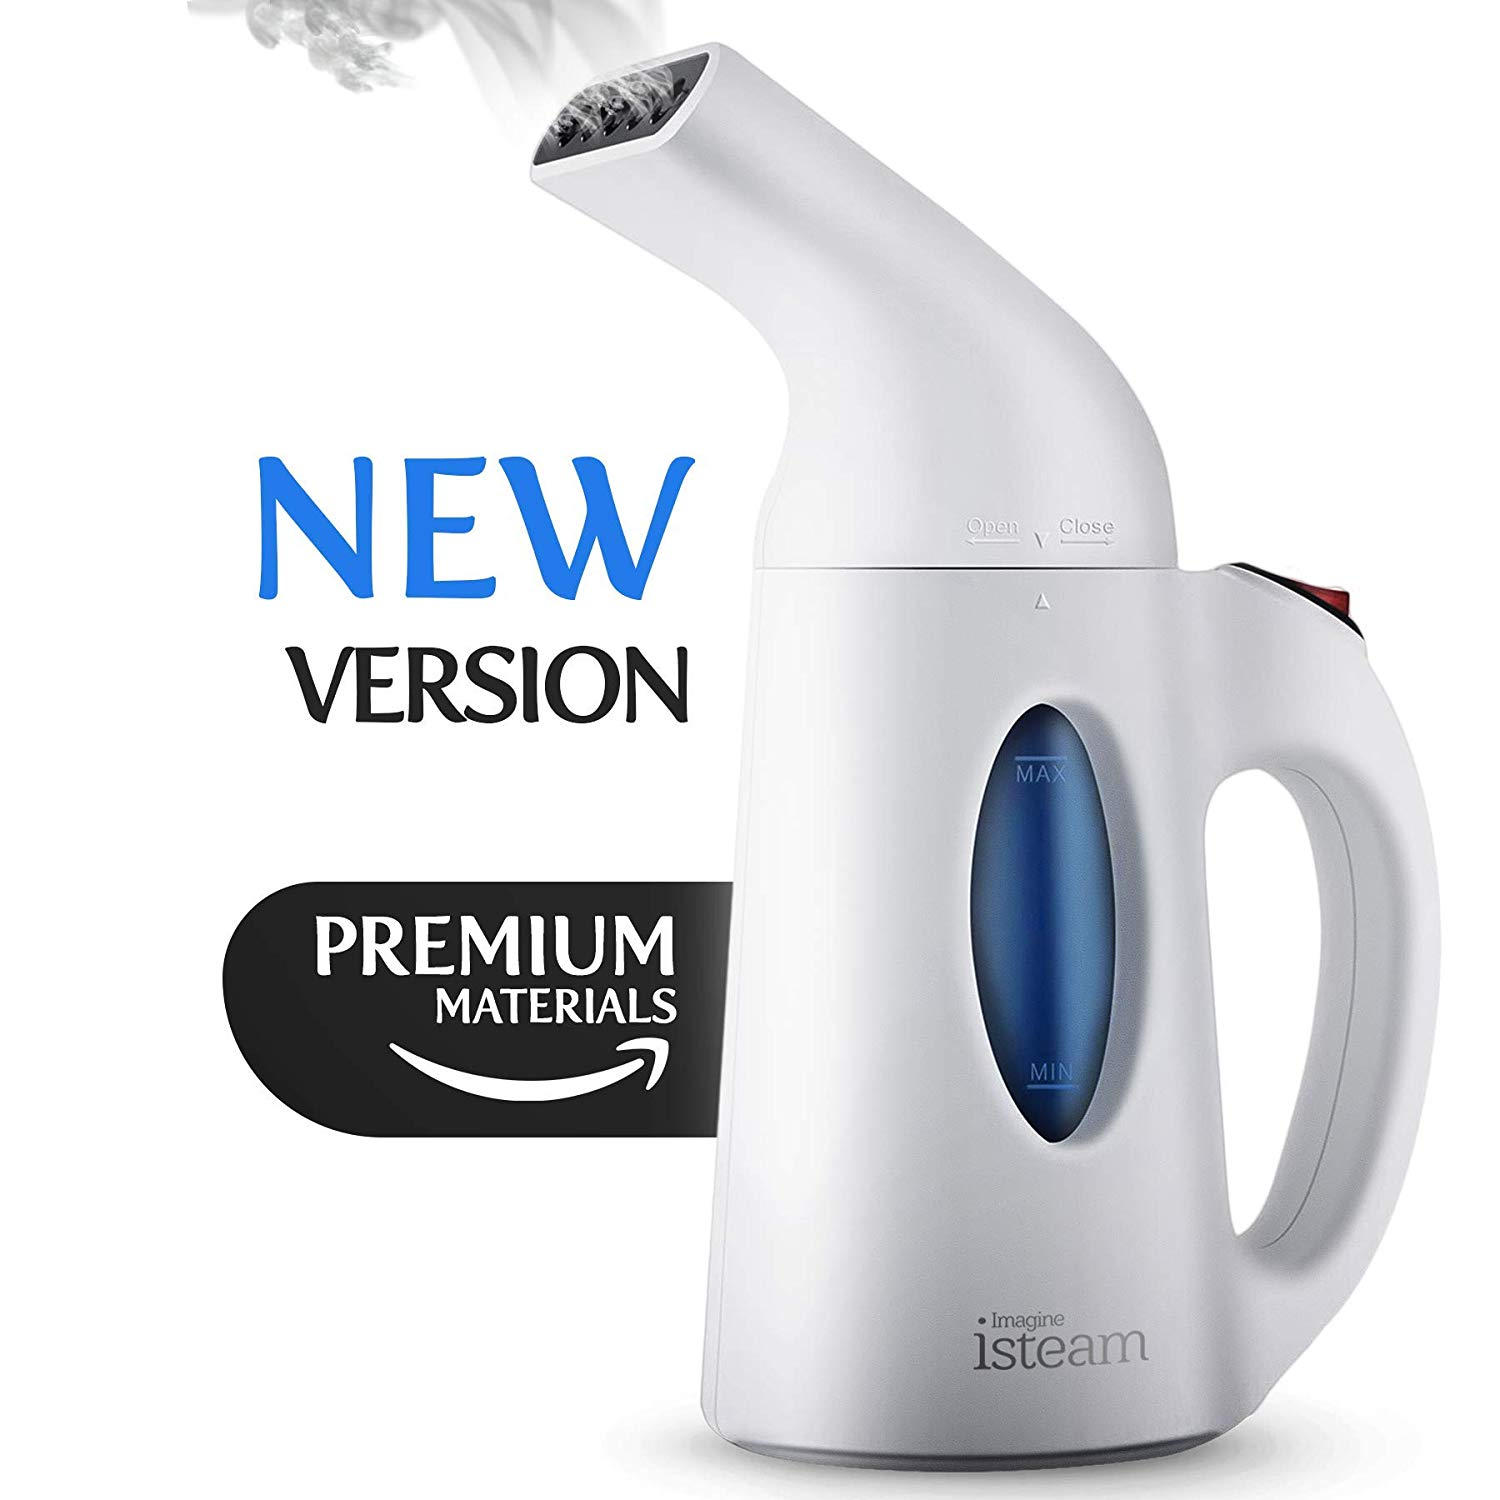 1. iSteam 2019 Handheld Steamer for Clothes